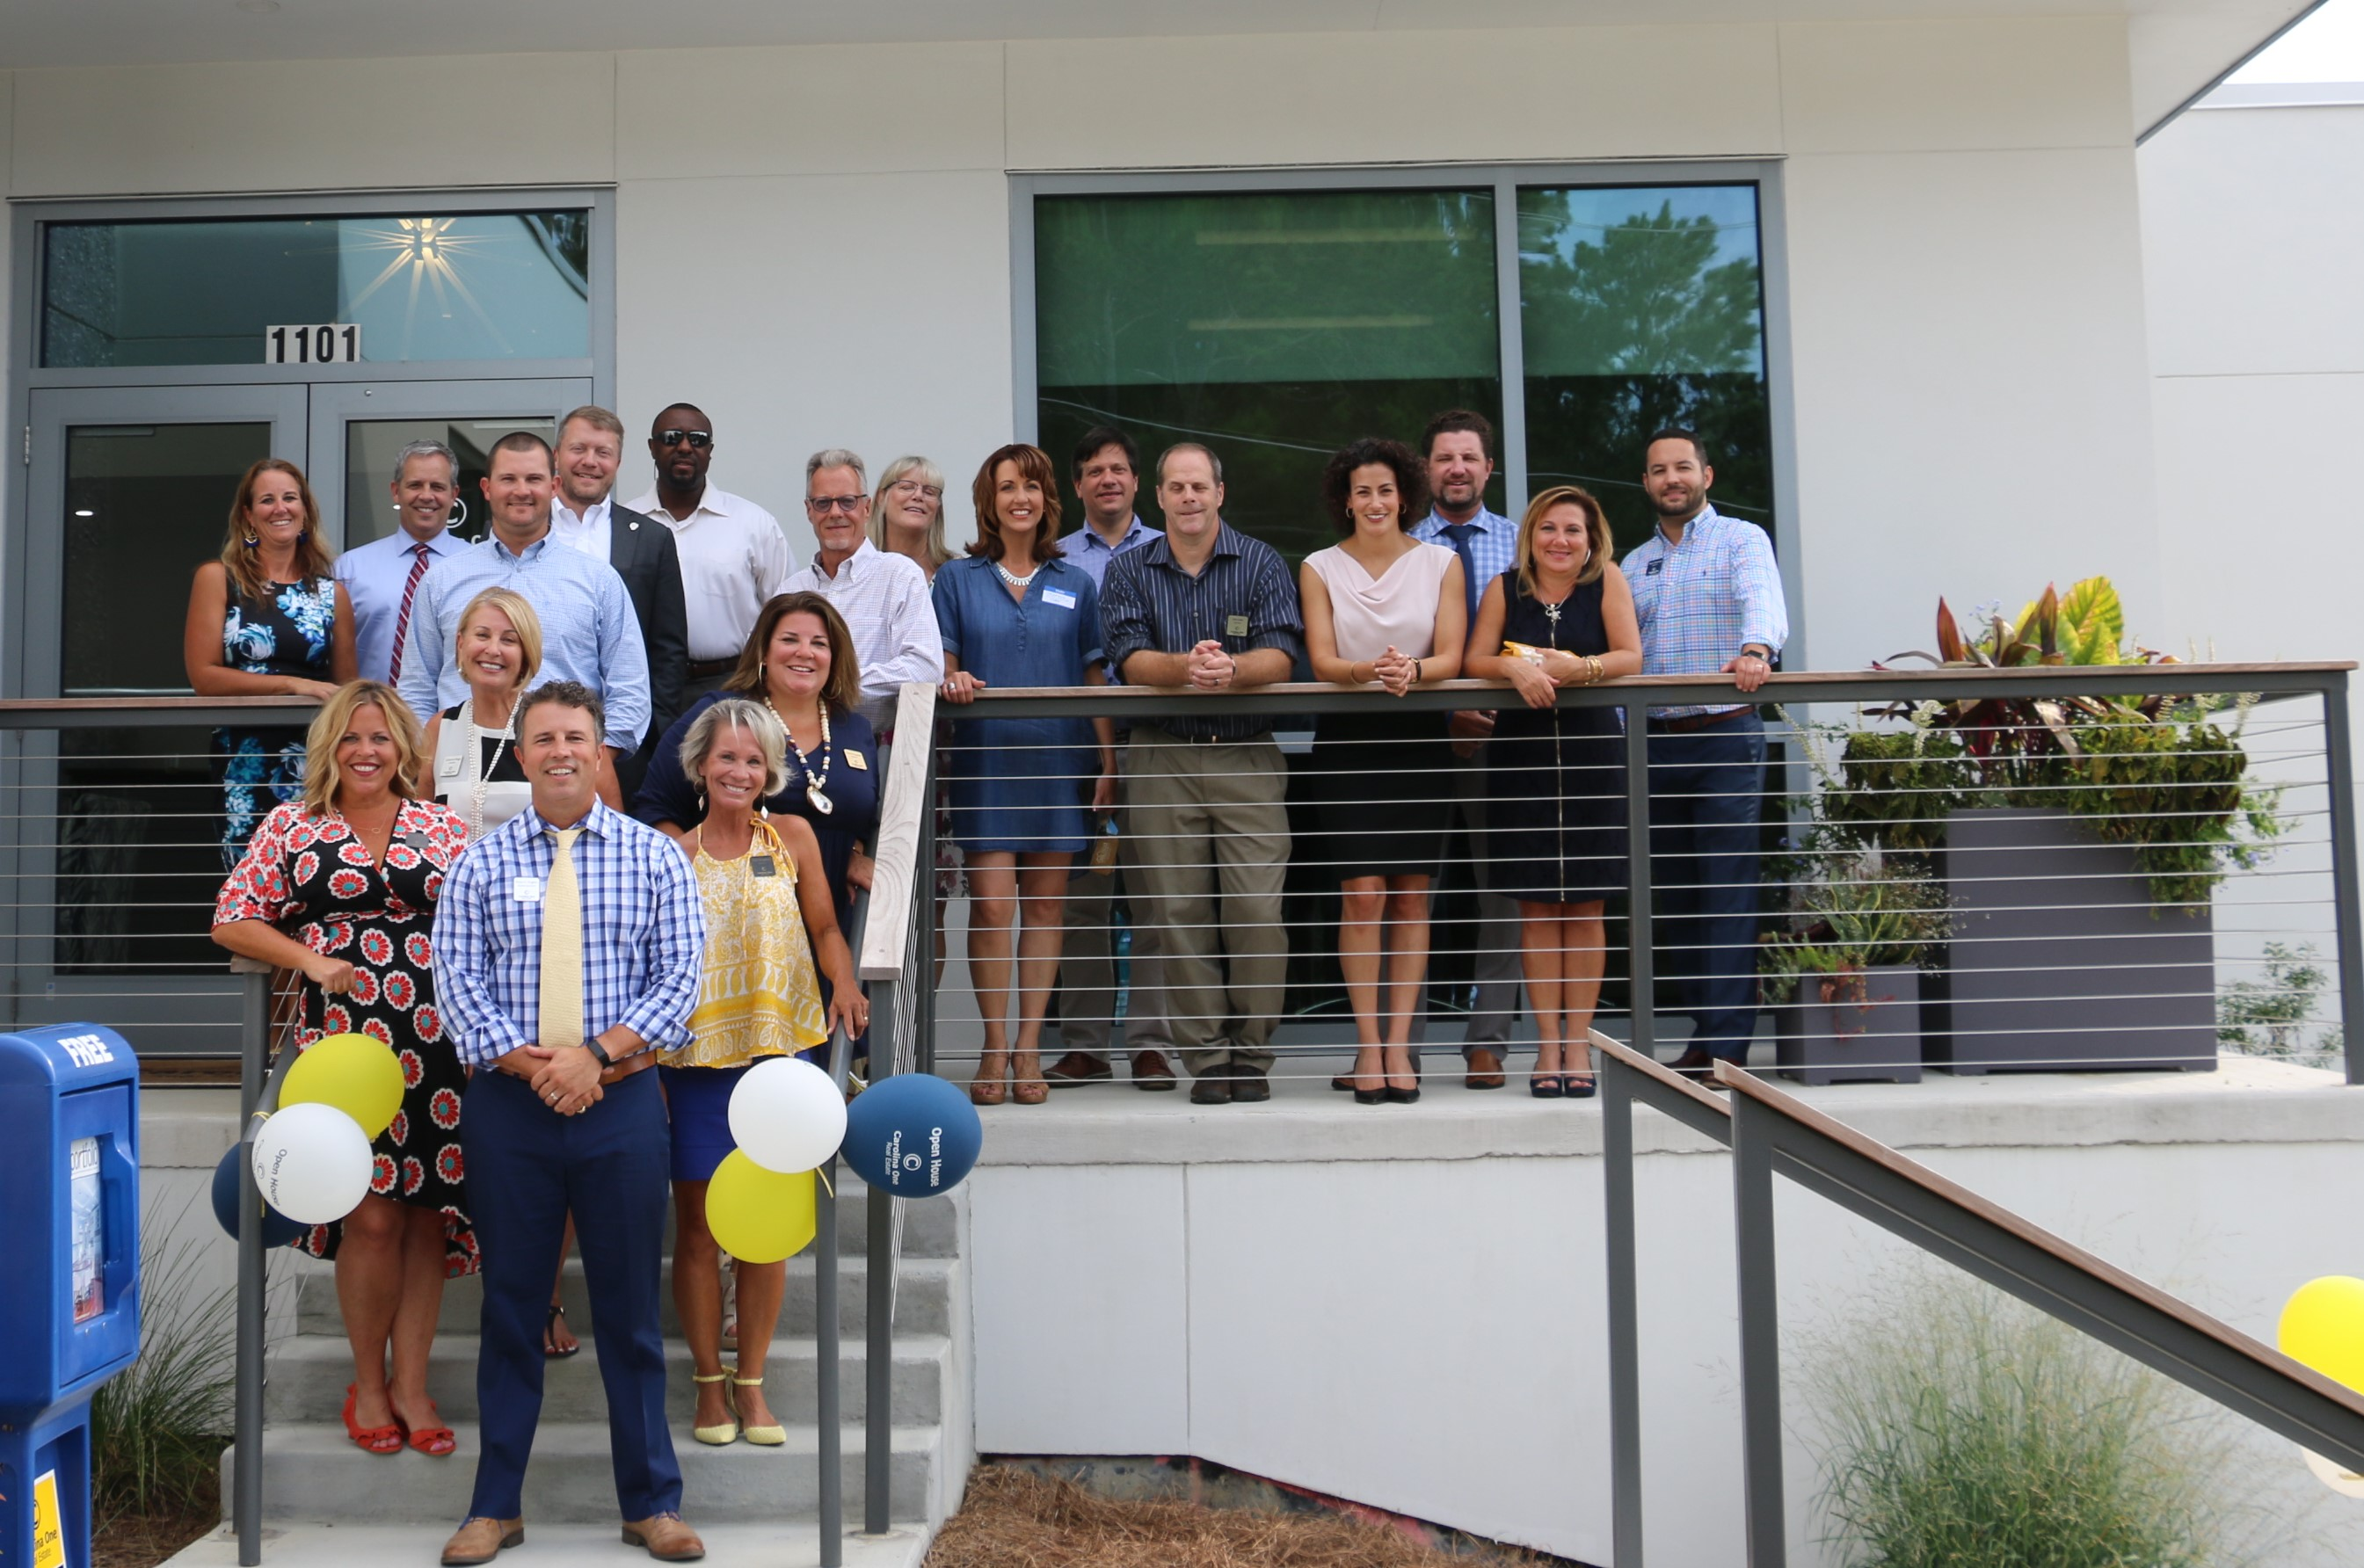 Those attending the packed gathering, which was catered by Dockery's of Daniel Island, included agents who will serve out of the new location and other guests.